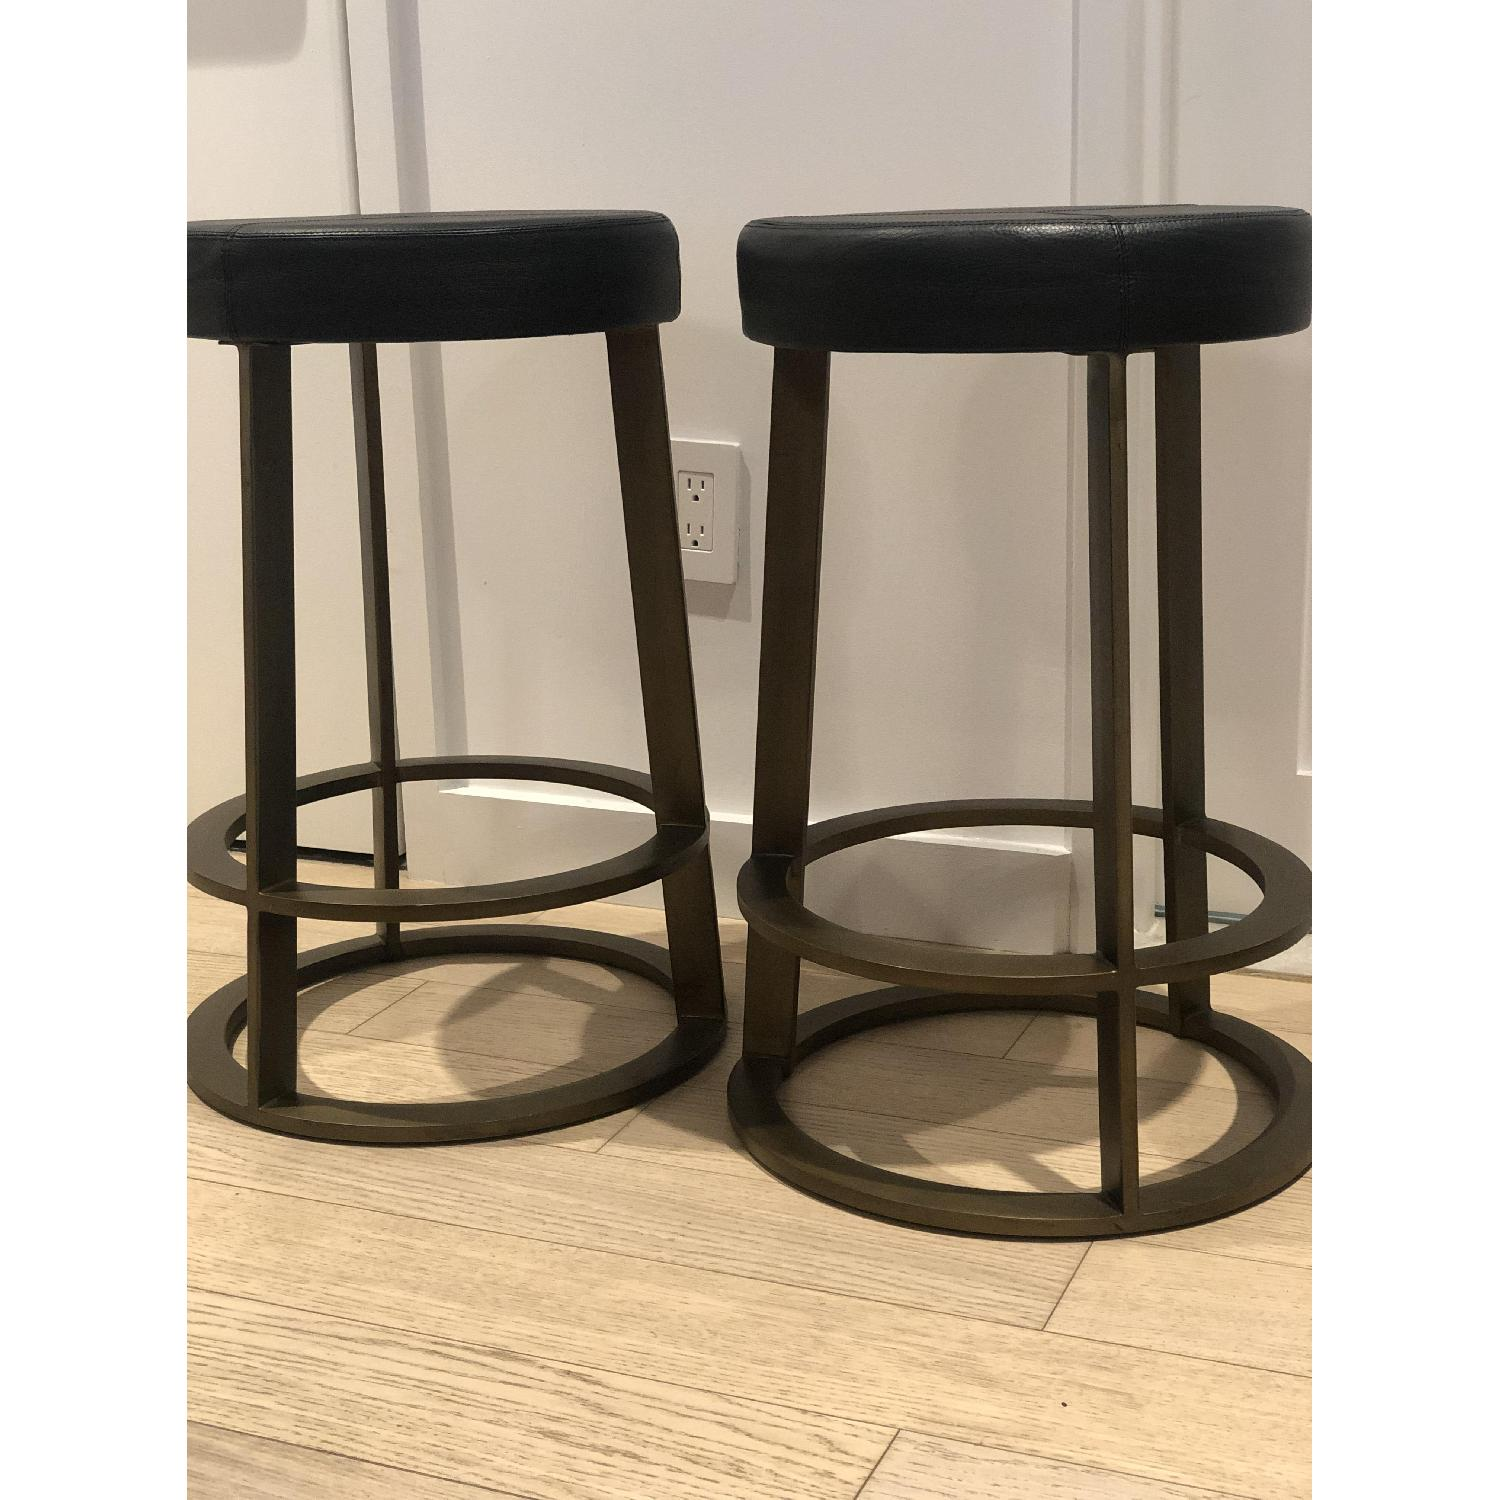 CB2 Leather Reverb Stools - image-10